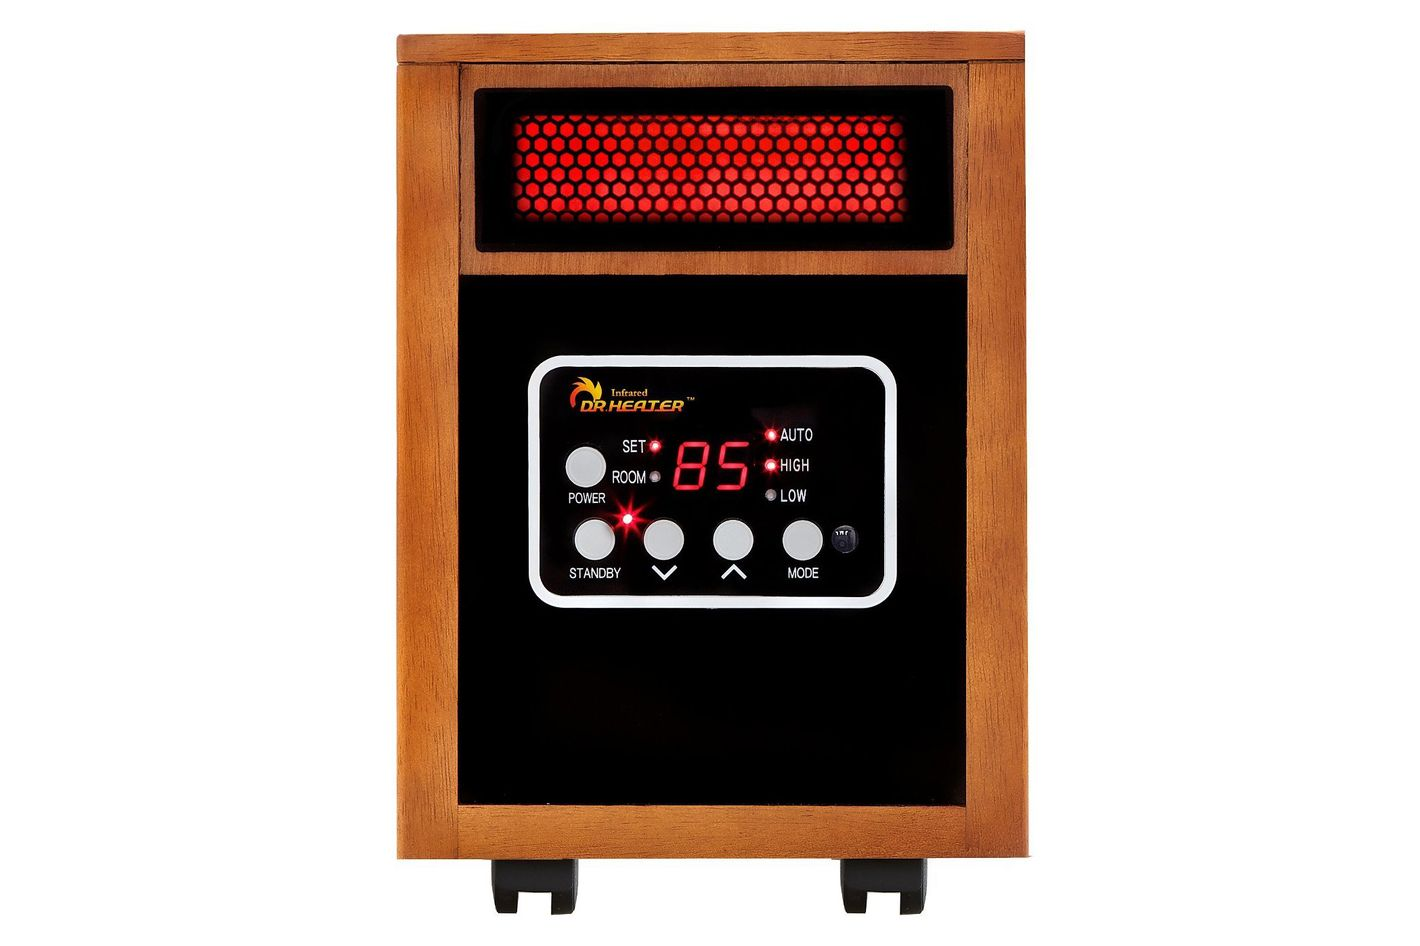 Dr. Infrared Heater Portable Space Heater, 1500-Watt